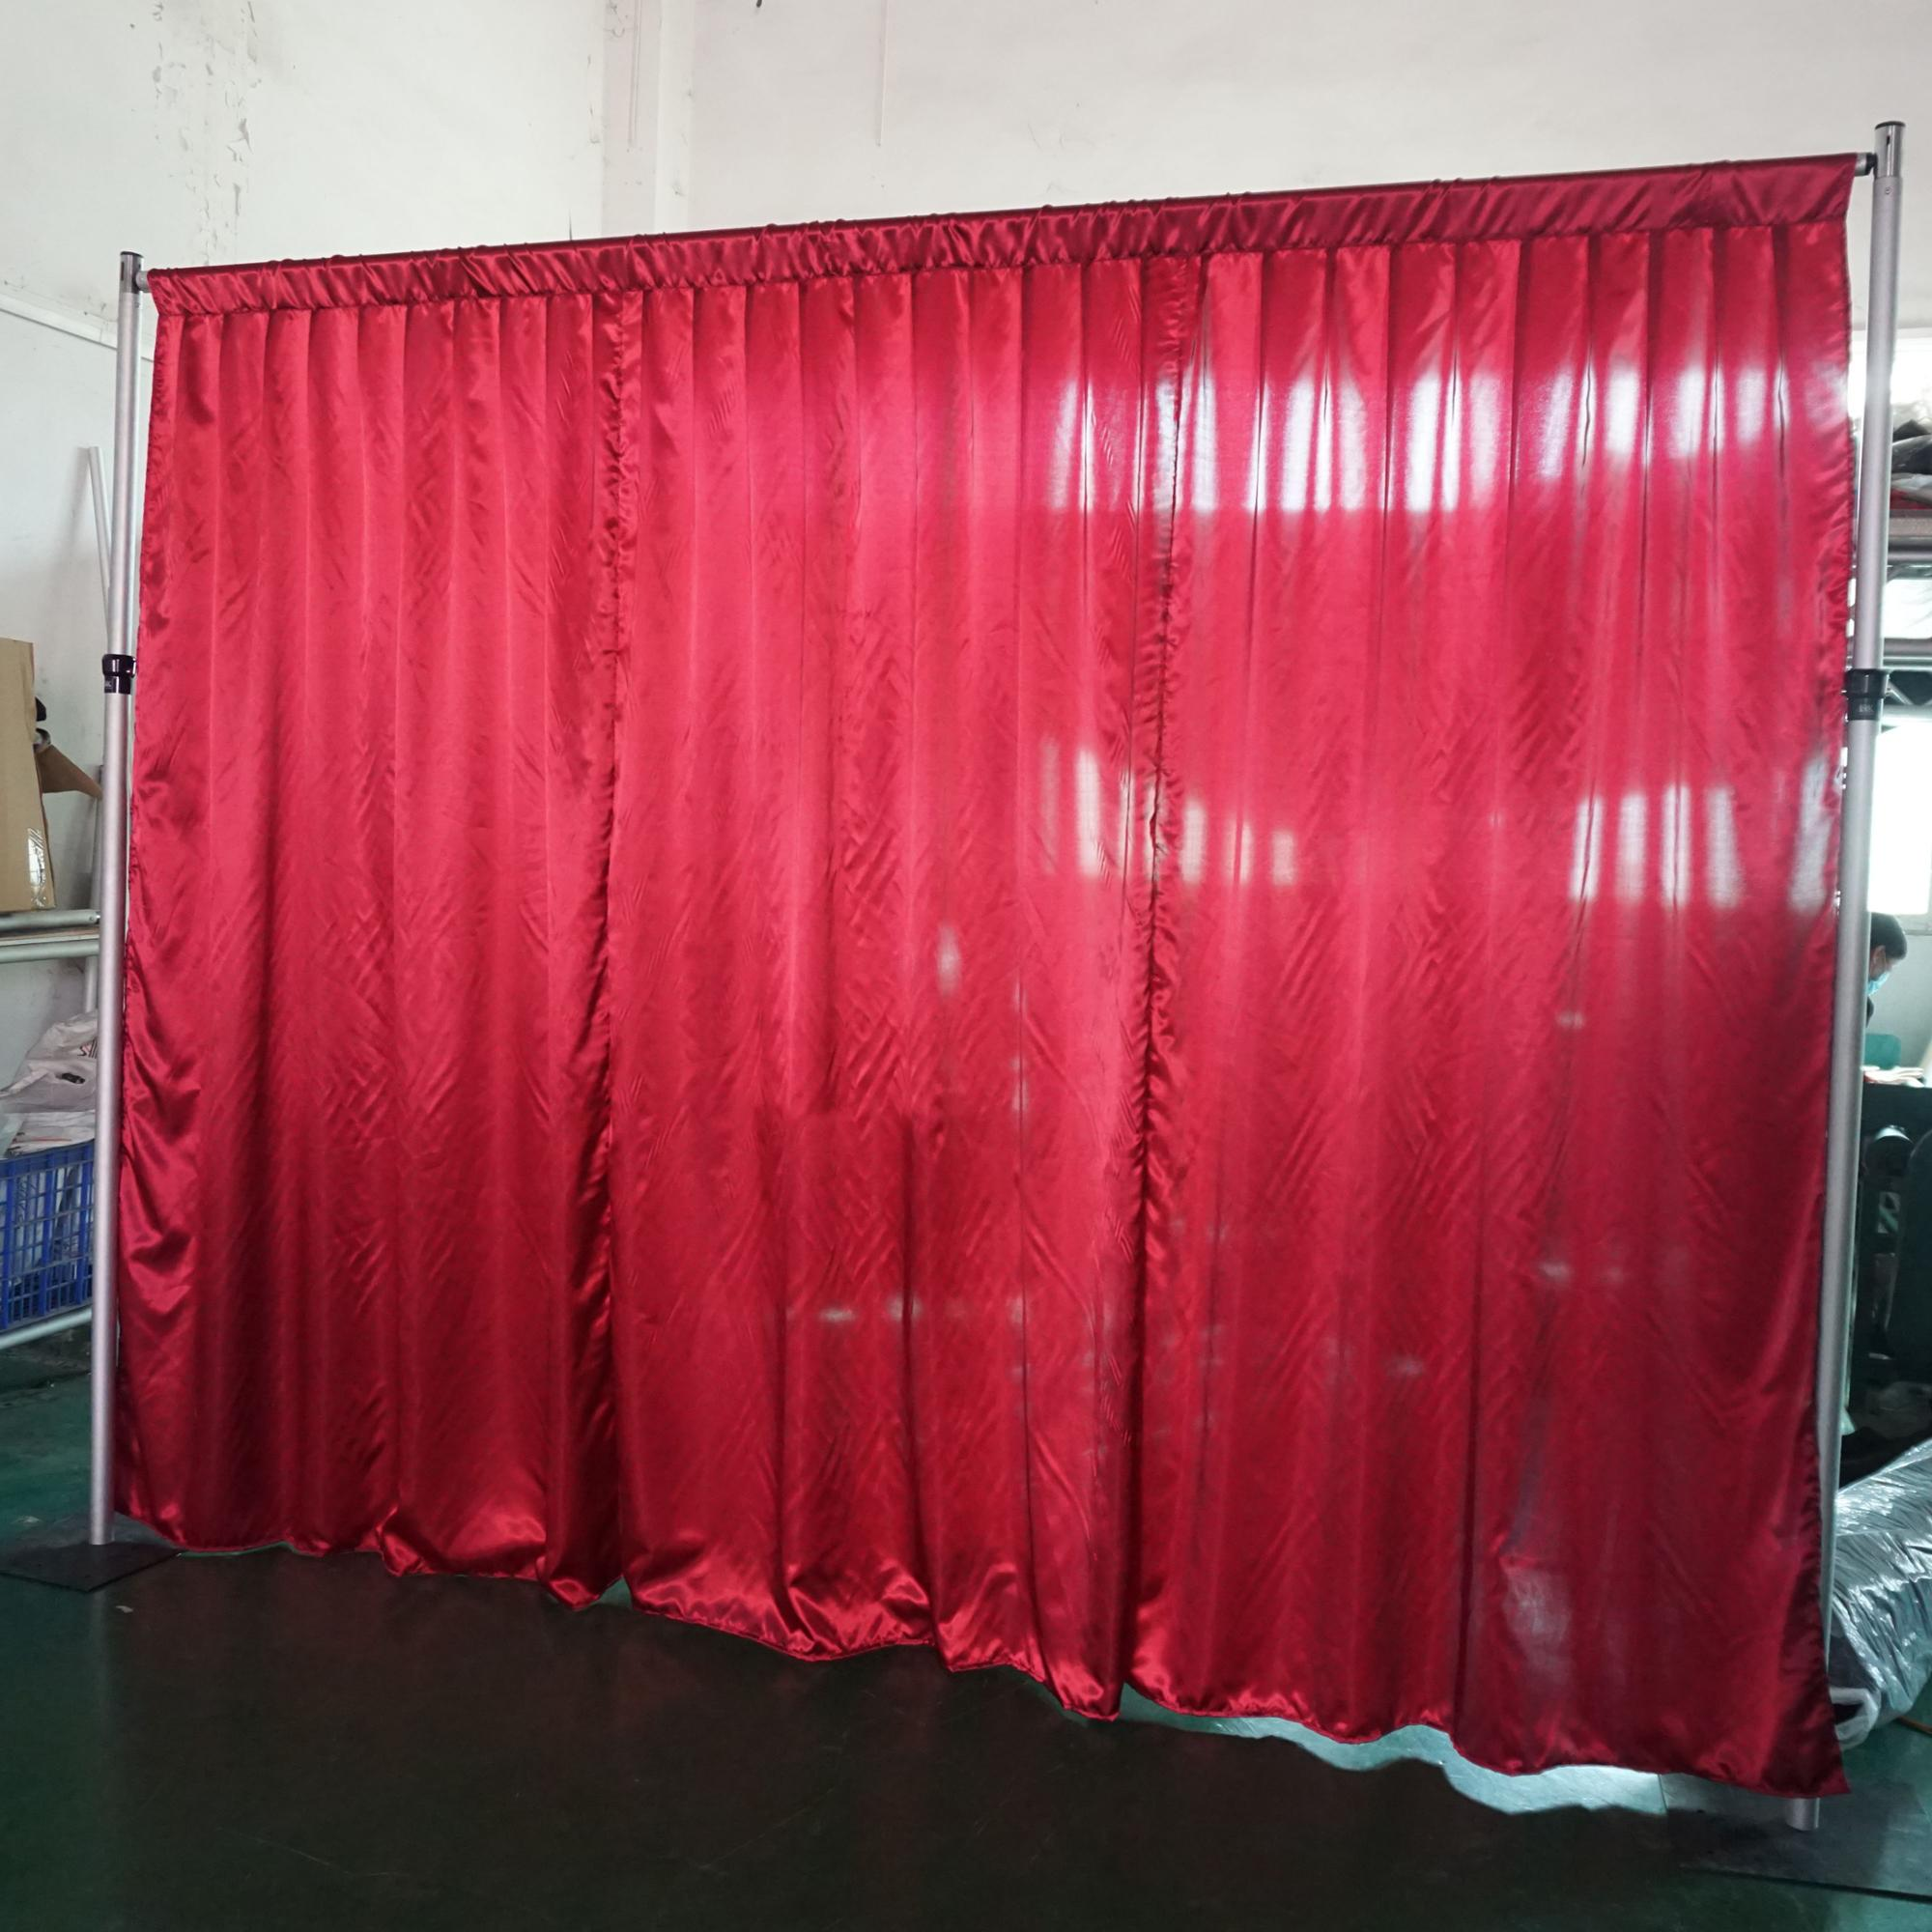 curtain blackout com designs pink luxury silk of lovely dreadful uk curtains dollclique ideas satisfactory faux